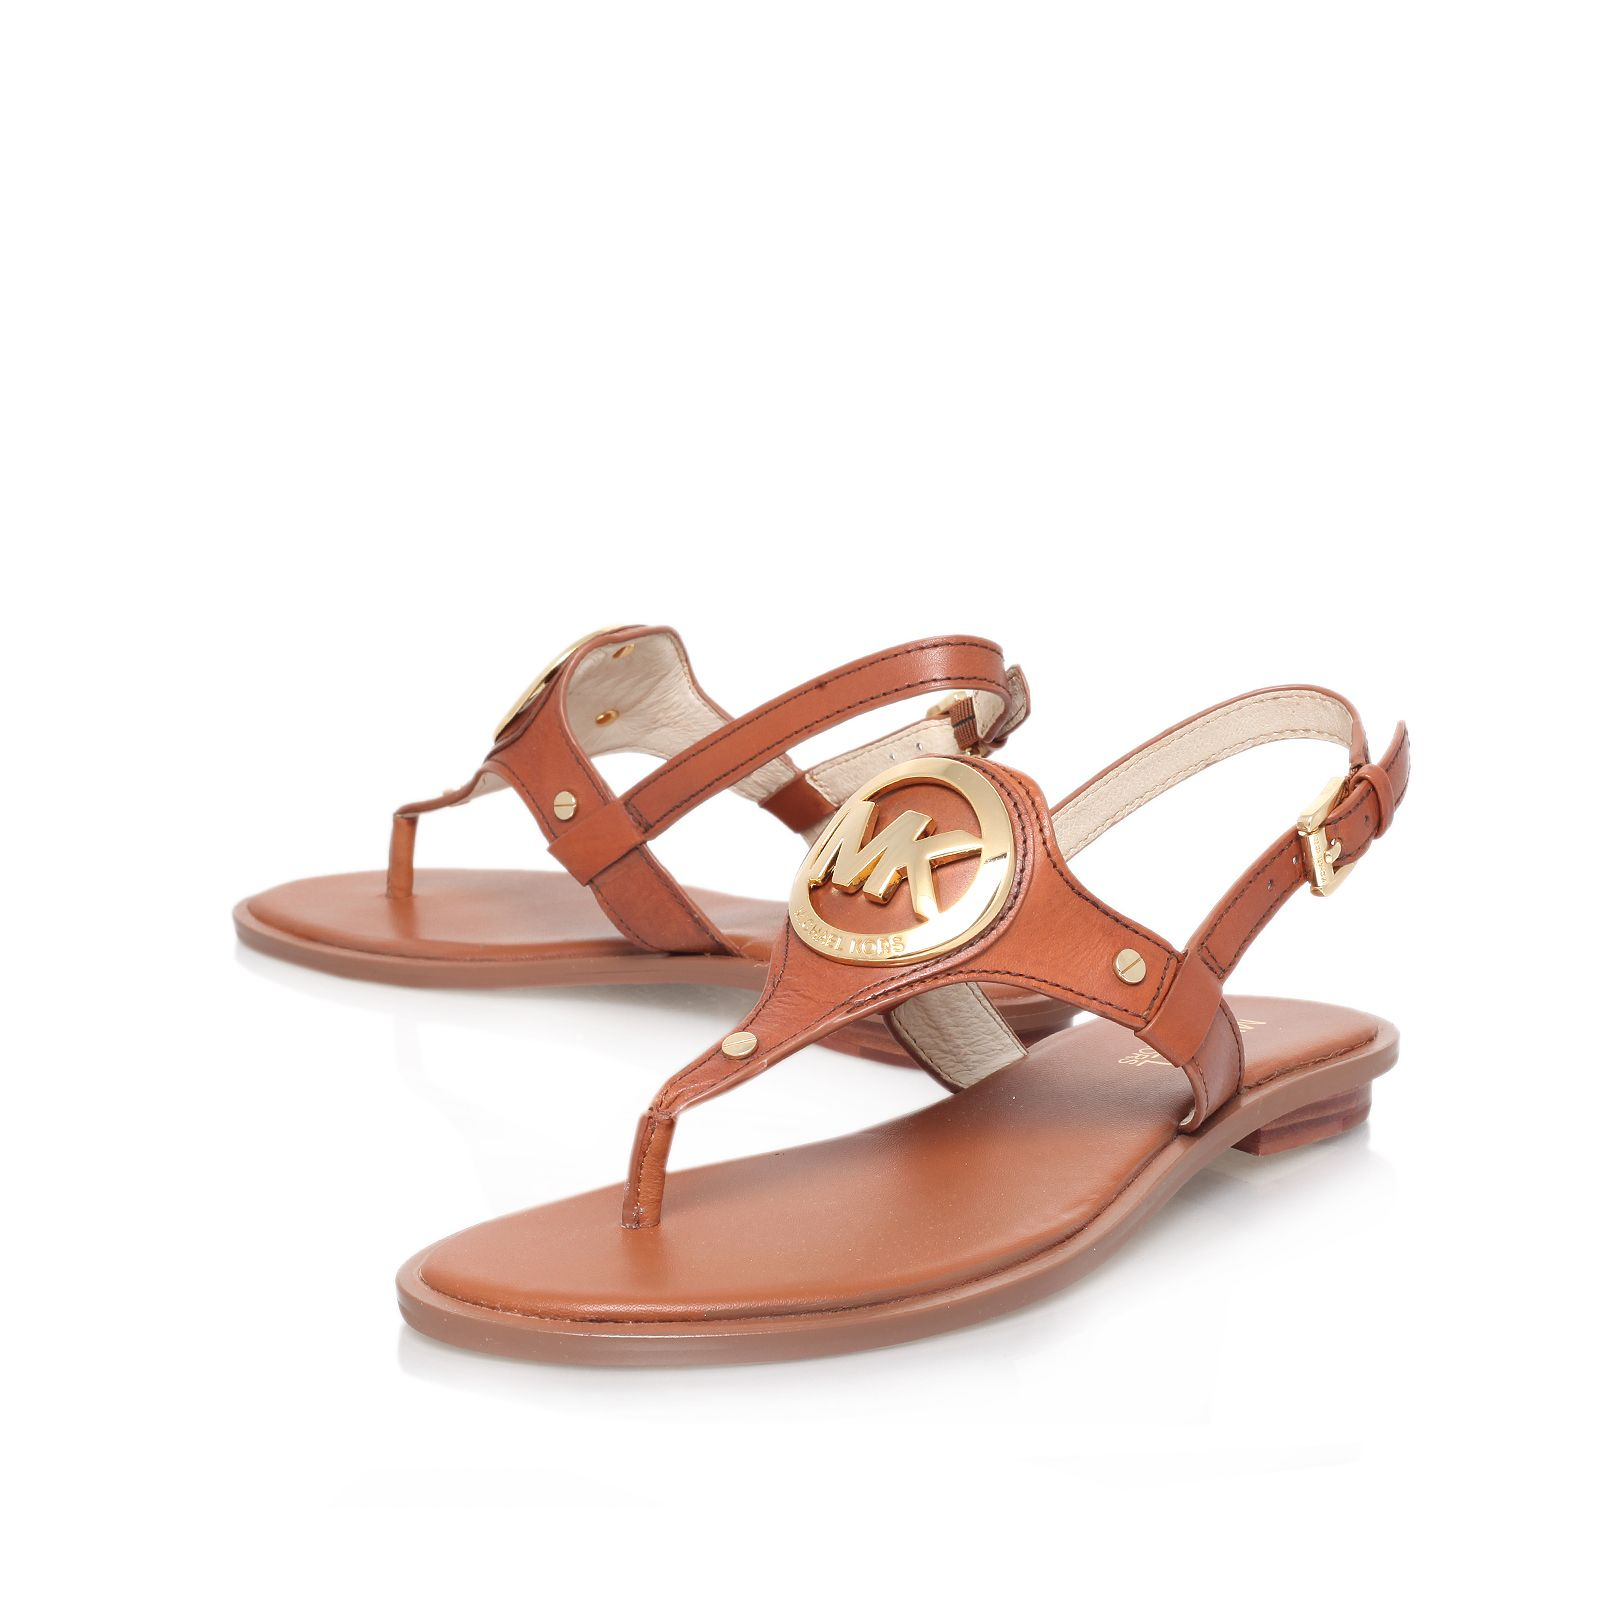 Lyst Michael Kors Aubrey Charm Thong Sandals In Brown